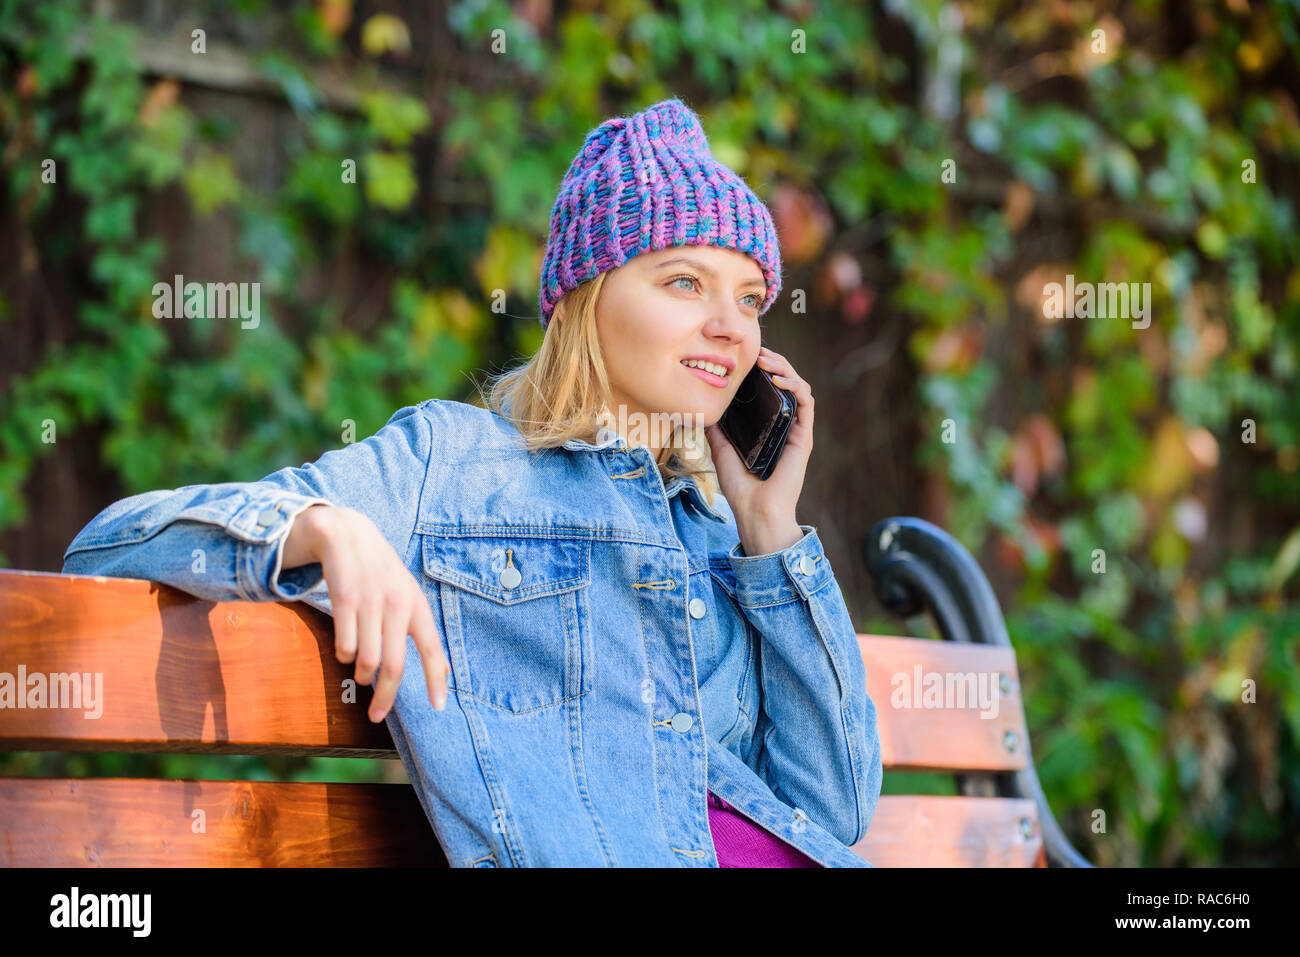 I am waiting for you in park. Girl busy with smartphone green nature background. Woman having mobile conversation. Girl smartphone call friend. Stay touch with modern smartphone. Mobile call concept. - Stock Image